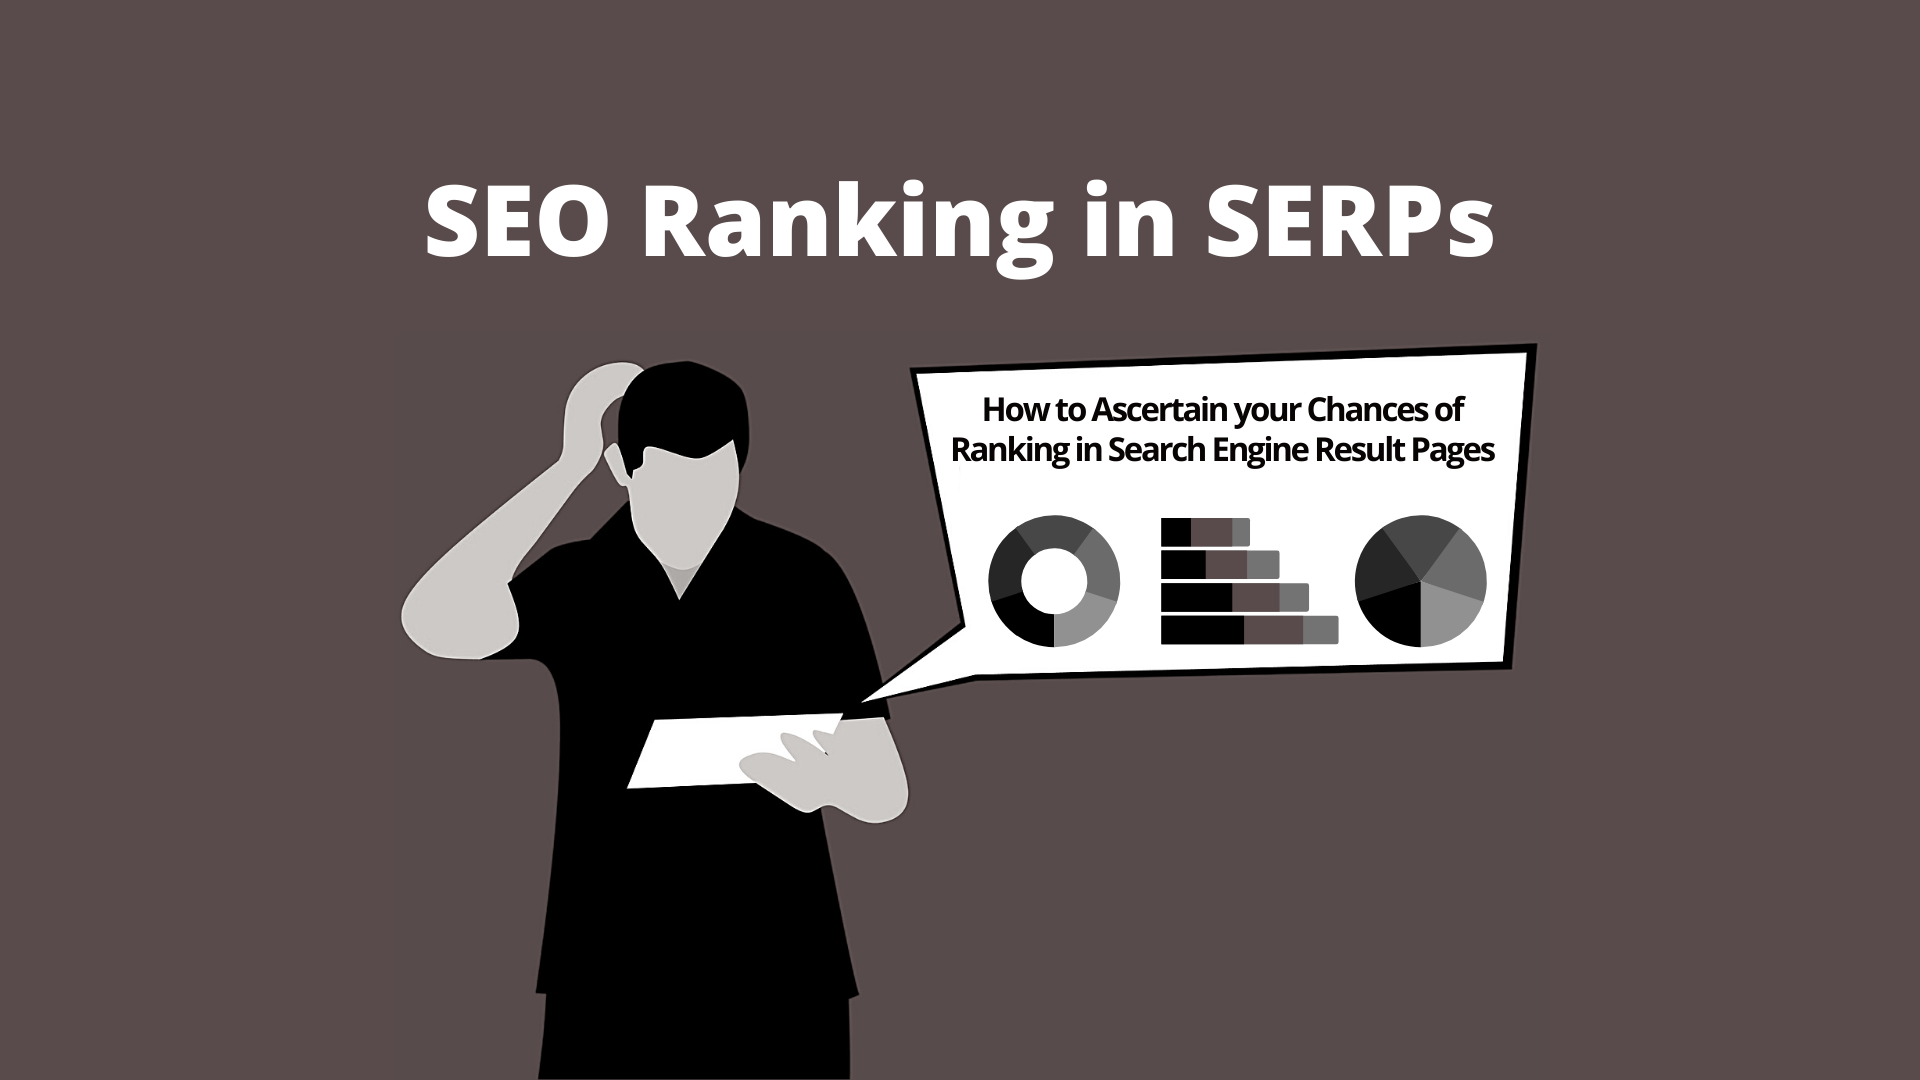 SEO Ranking in SERPs